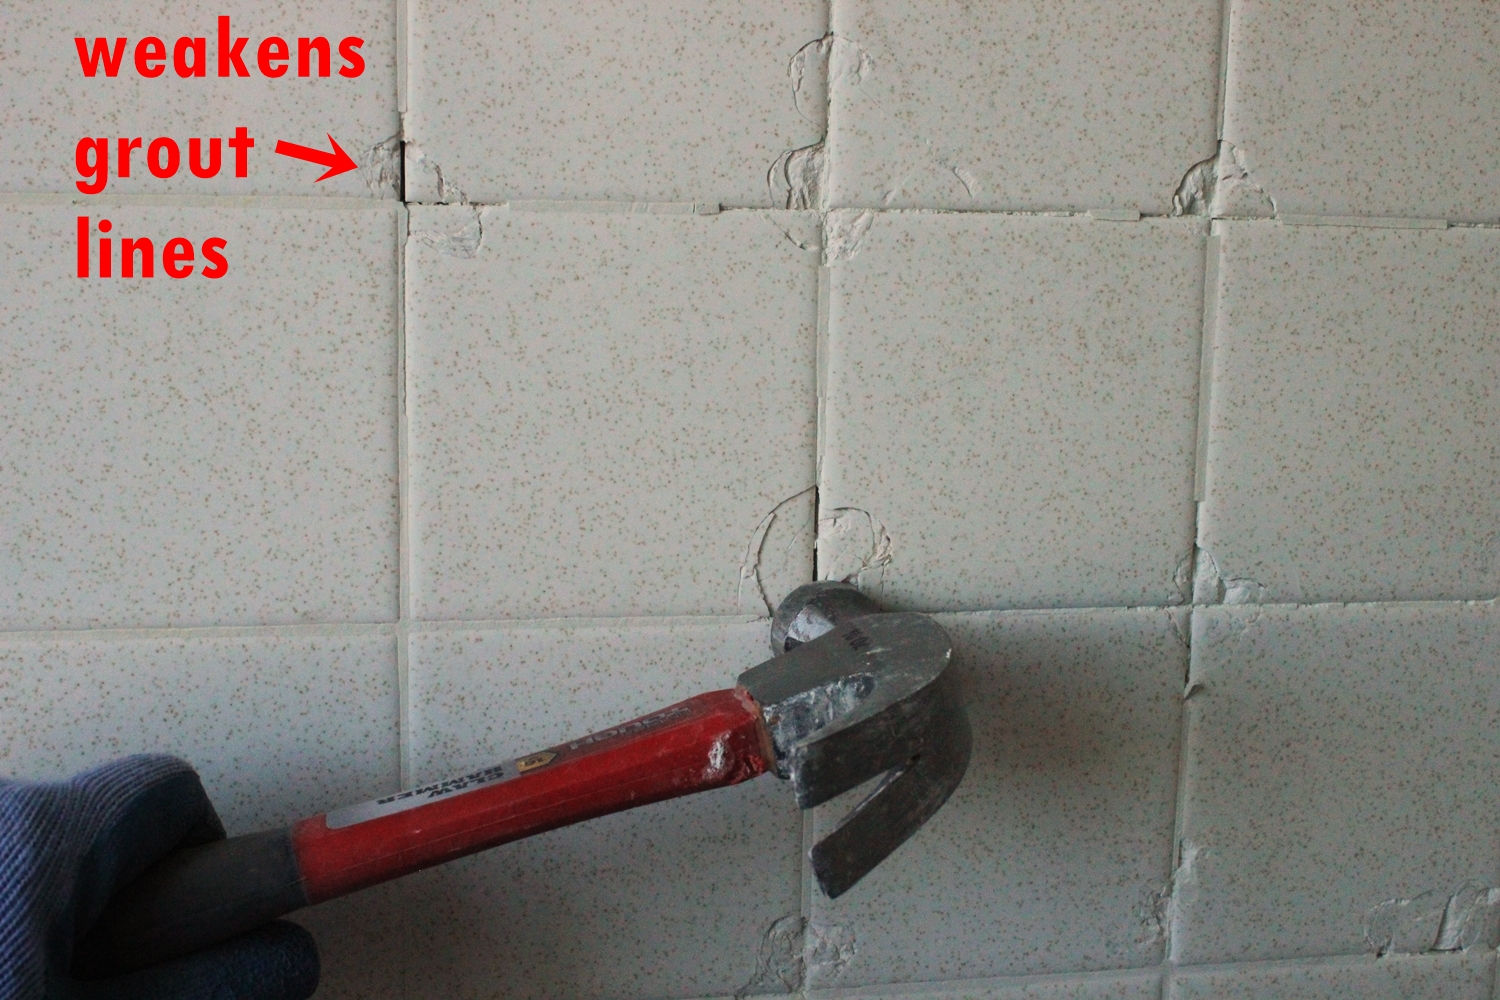 Weakens grout lines